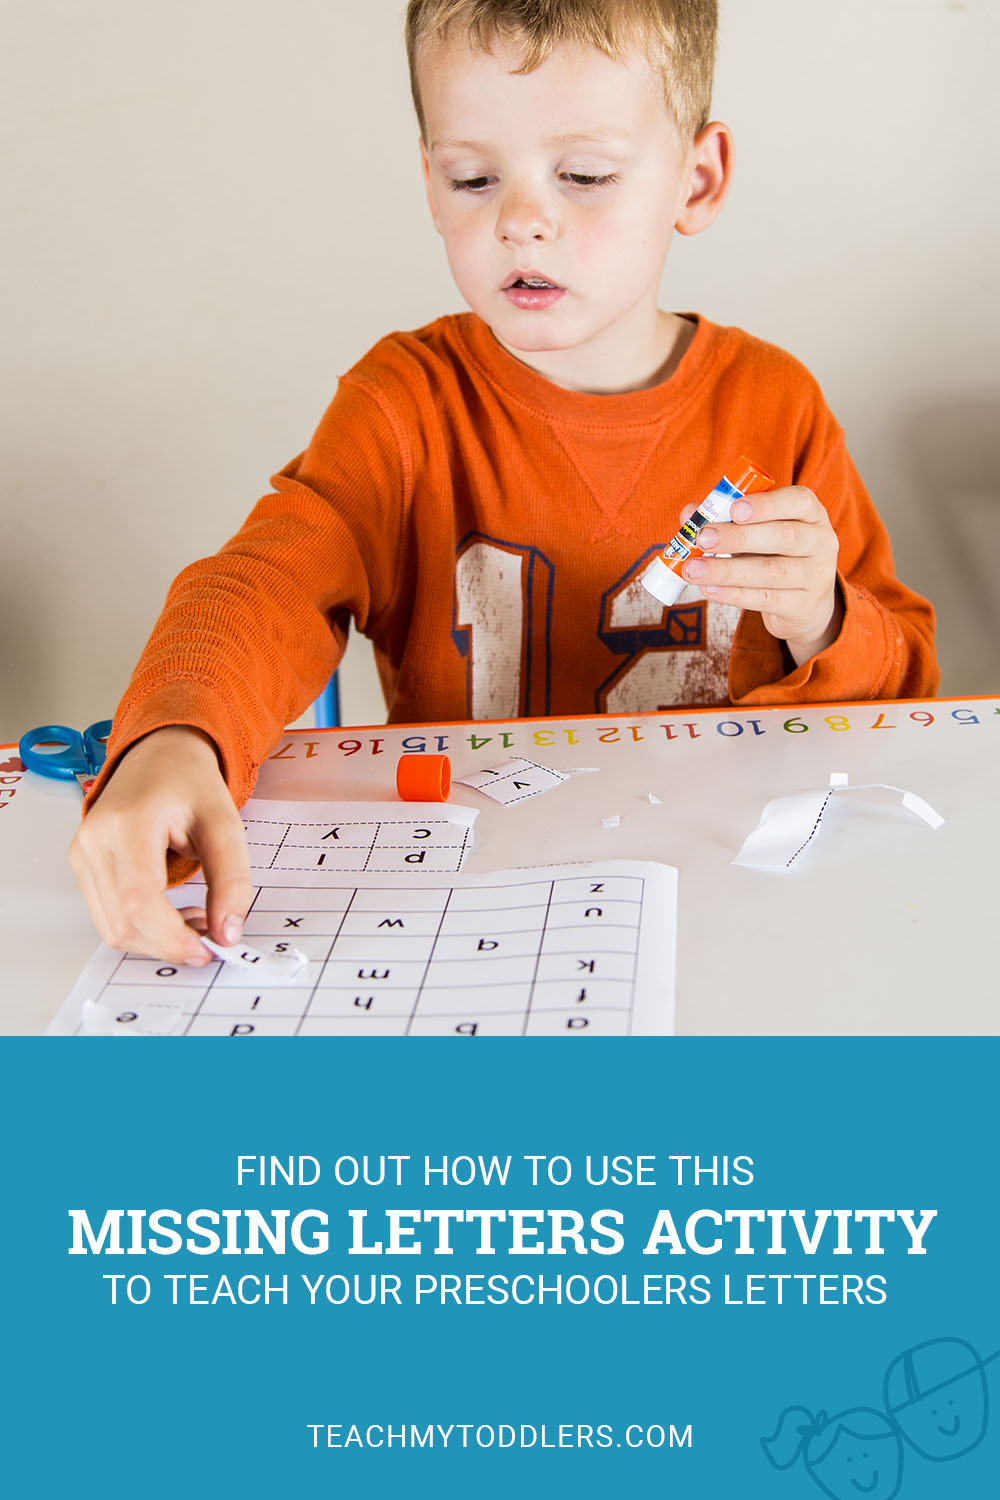 Find out how to use this missing letters activity to teach your toddlers letters